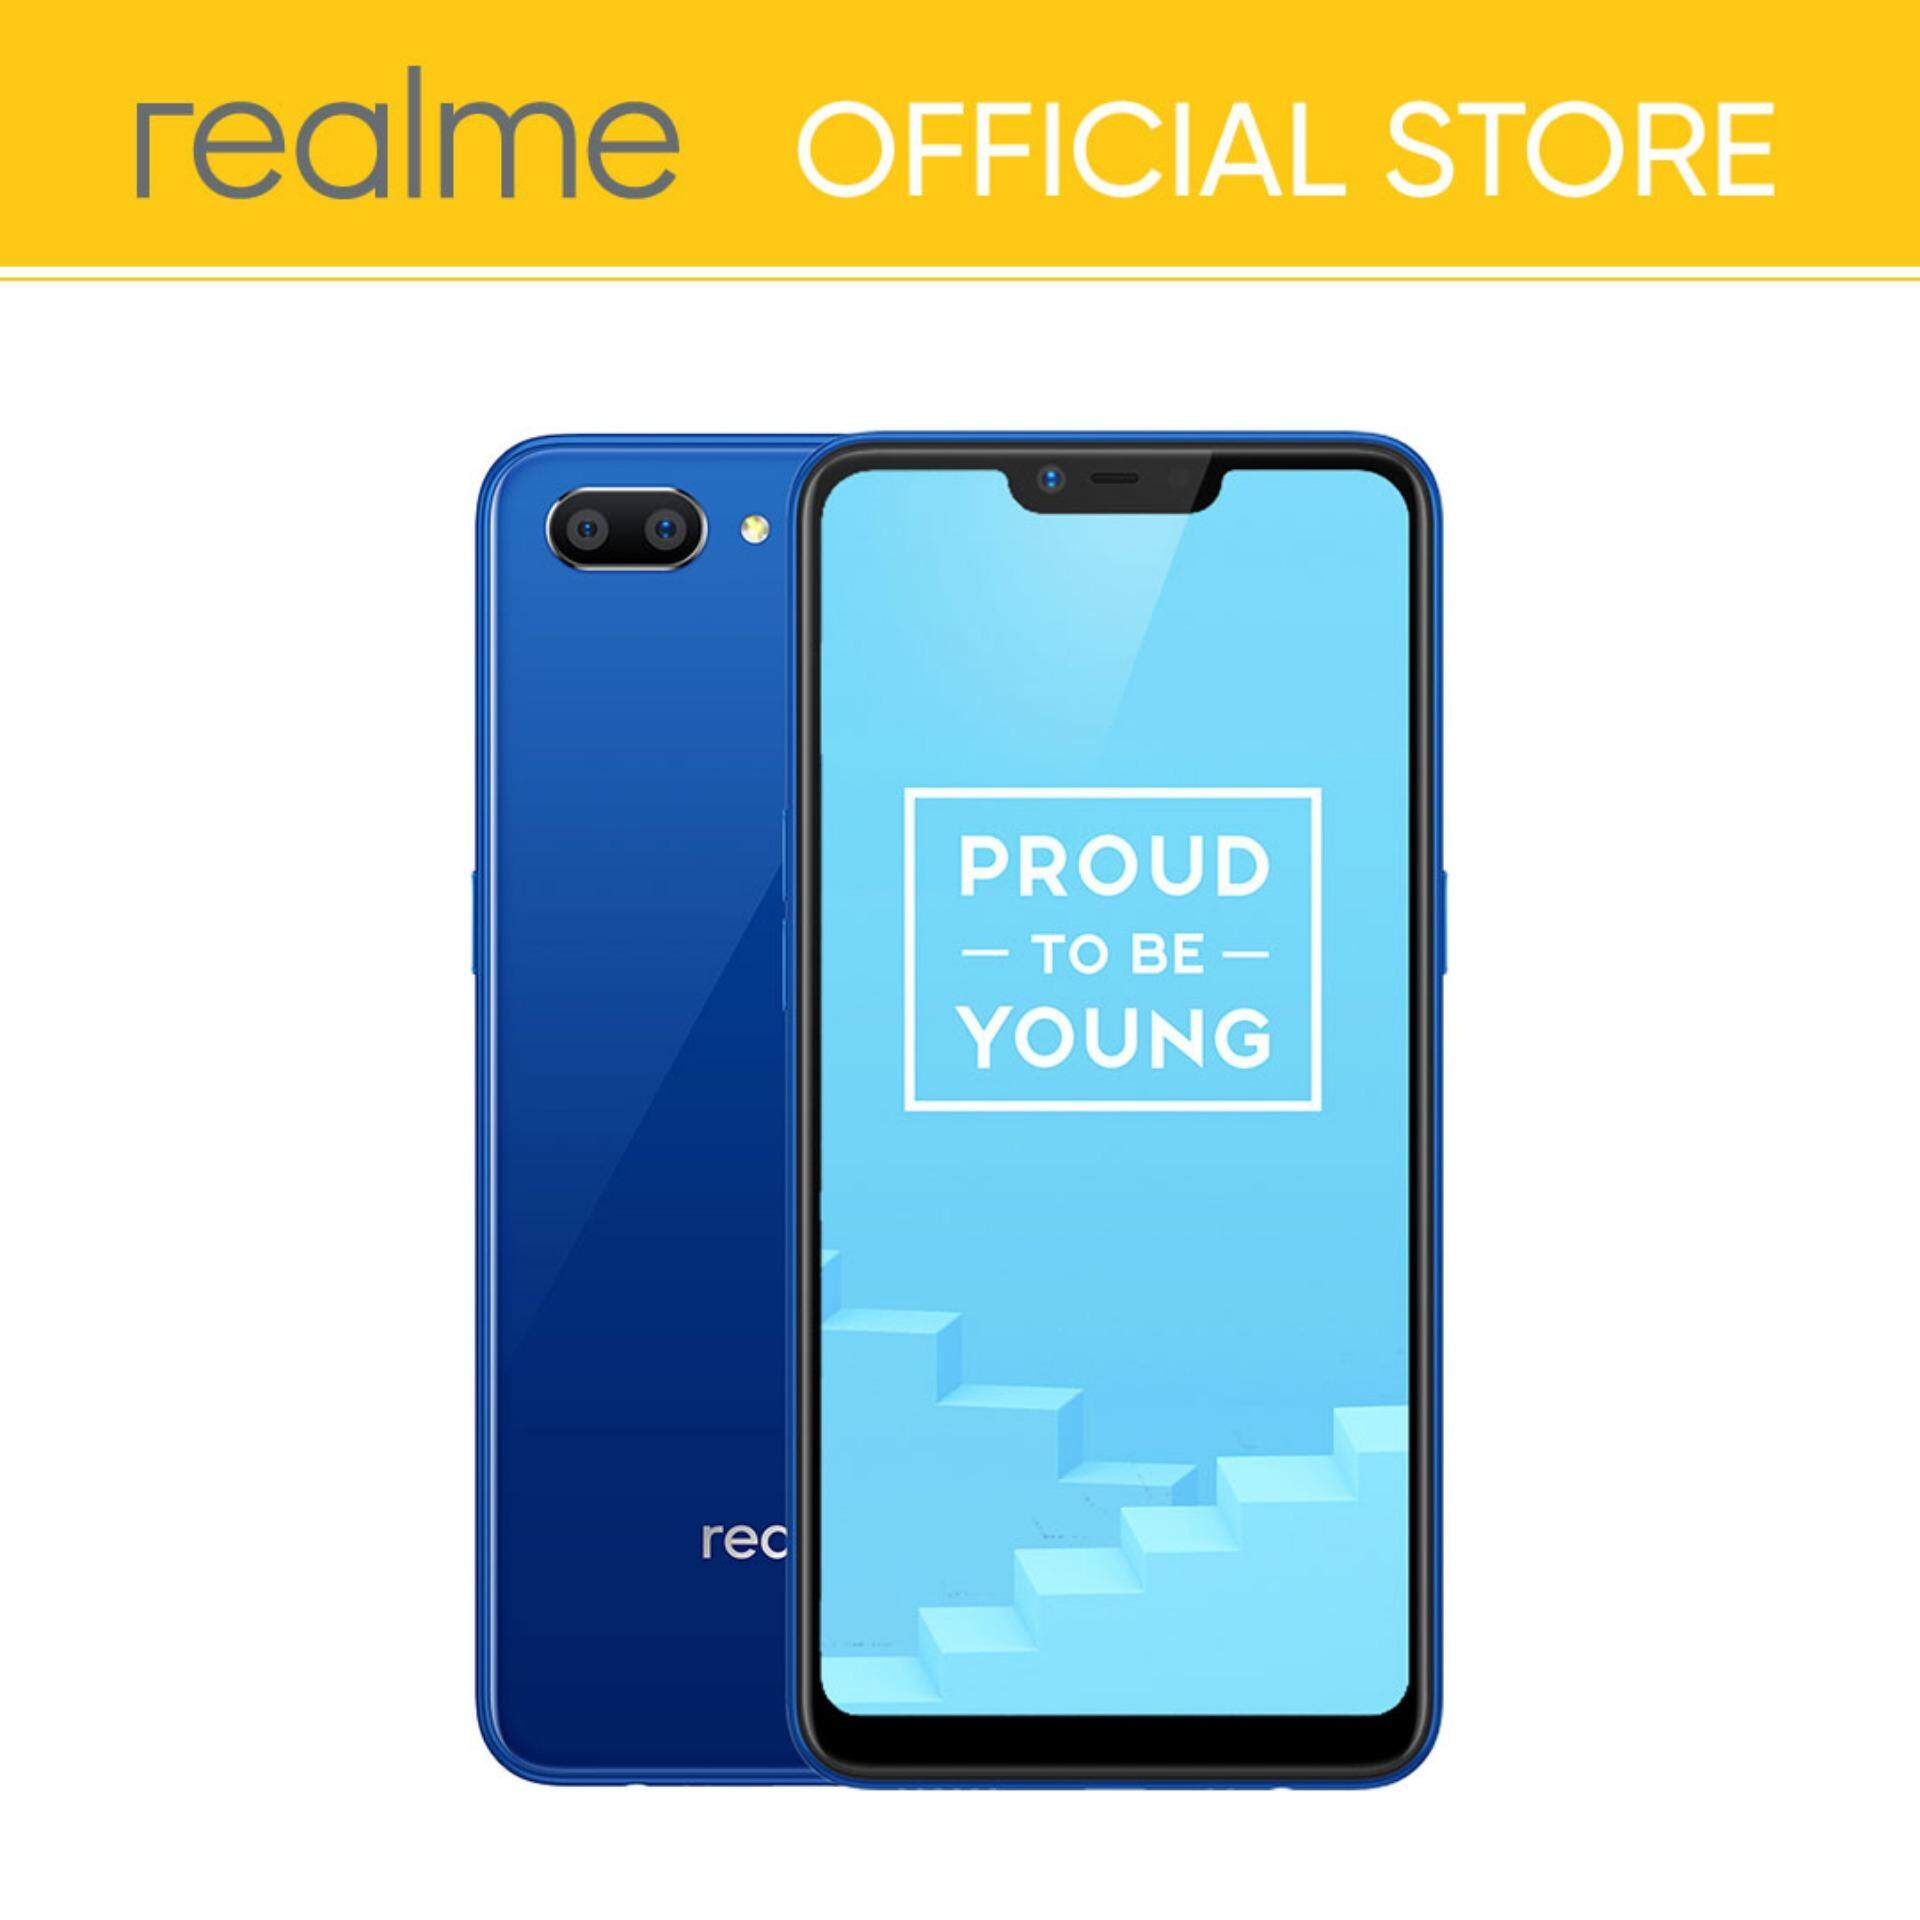 Realme C1 (2gb Ram+32gb Rom) By Lazada Retail Realme Official Store.